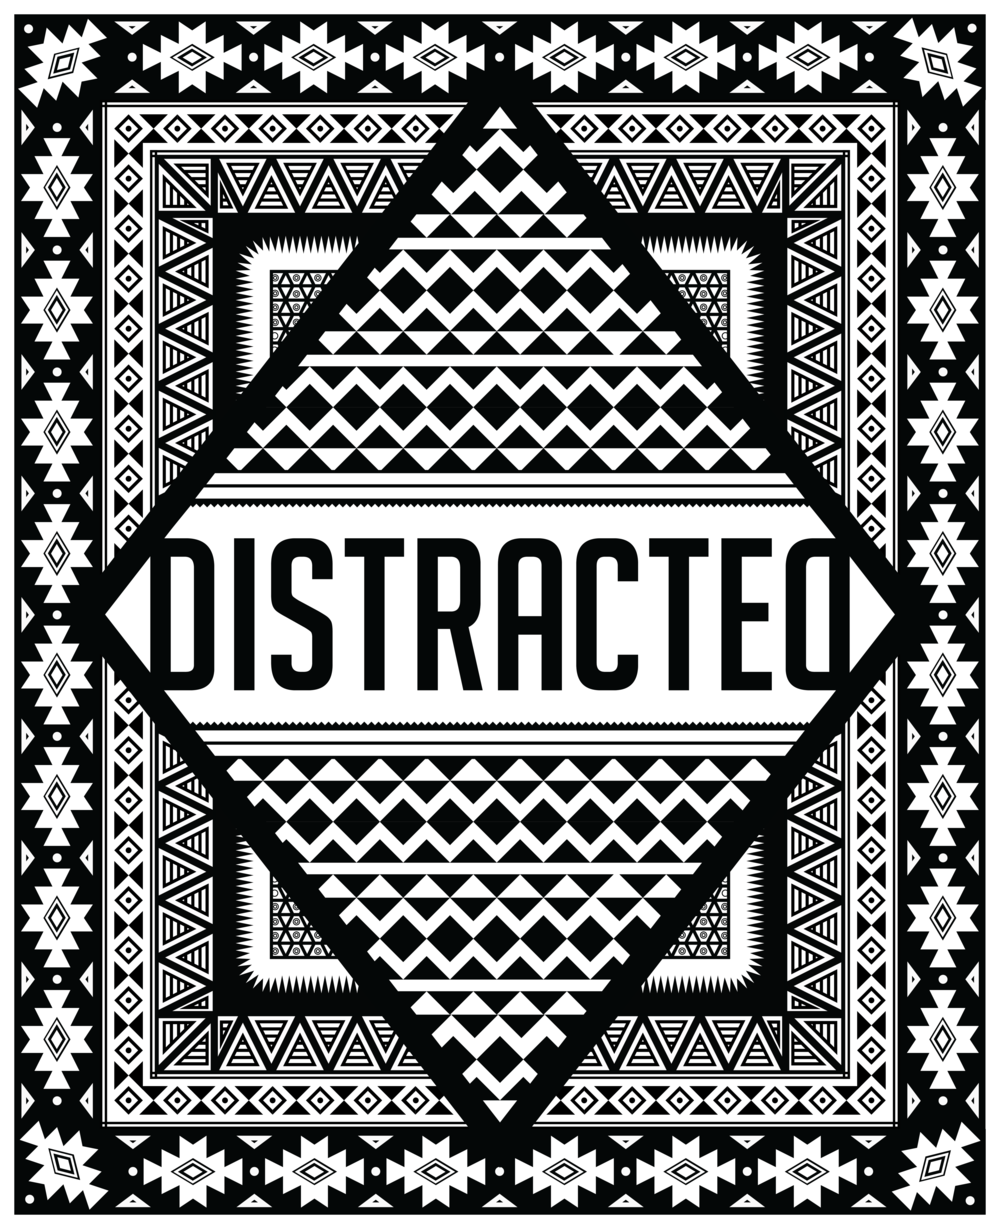 Distracted-2017.png